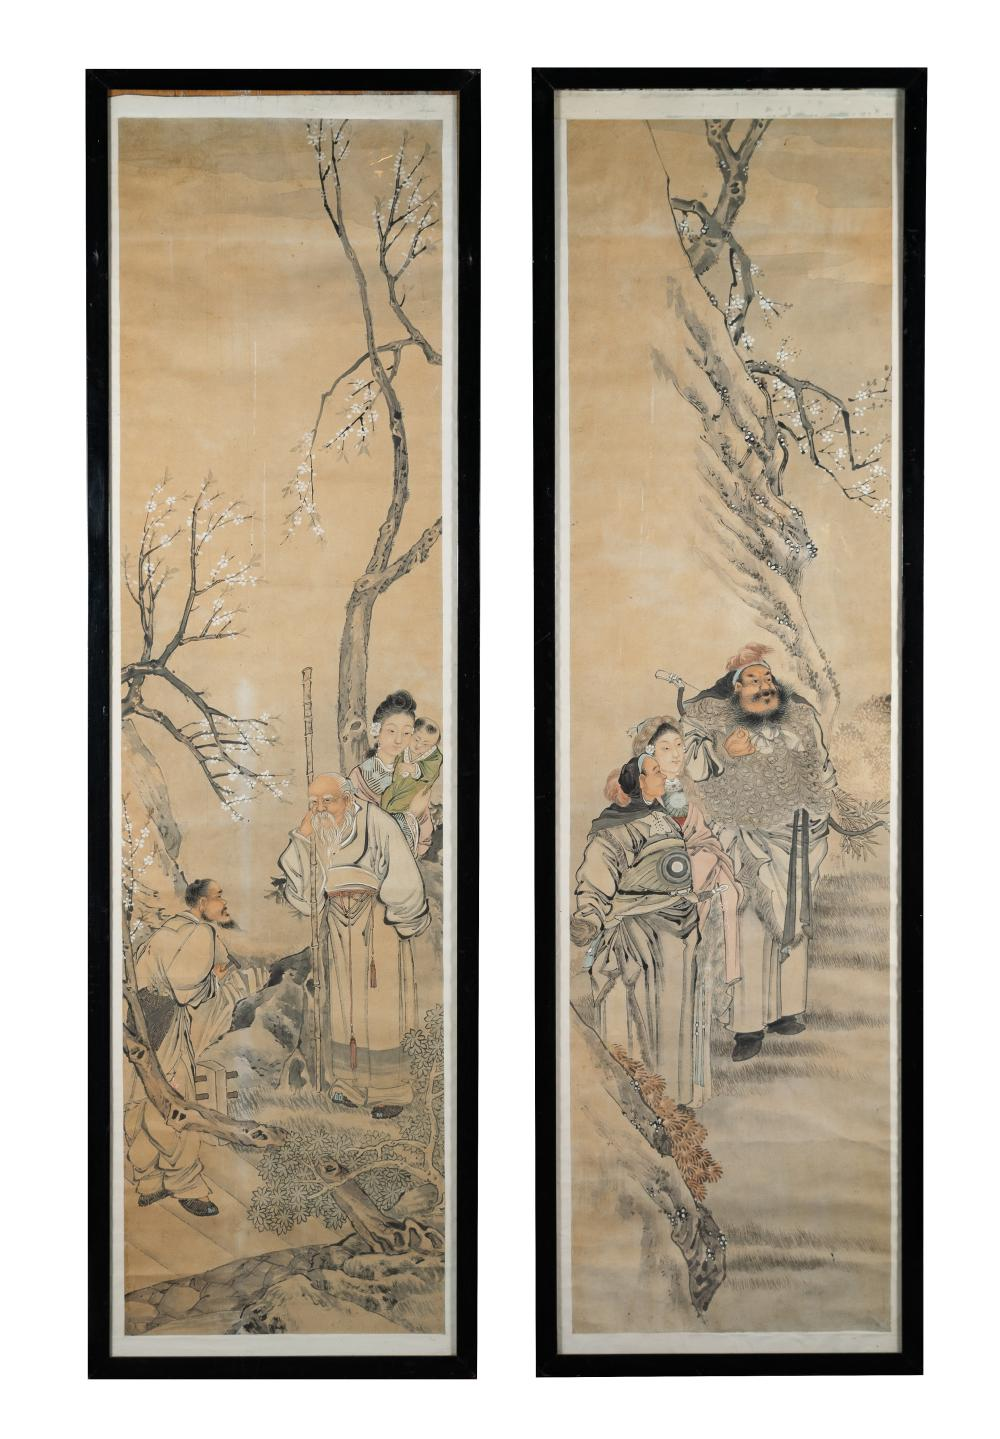 PAIR OF CHINESE PAINTINGS, 19TH - EARLY 20TH C.